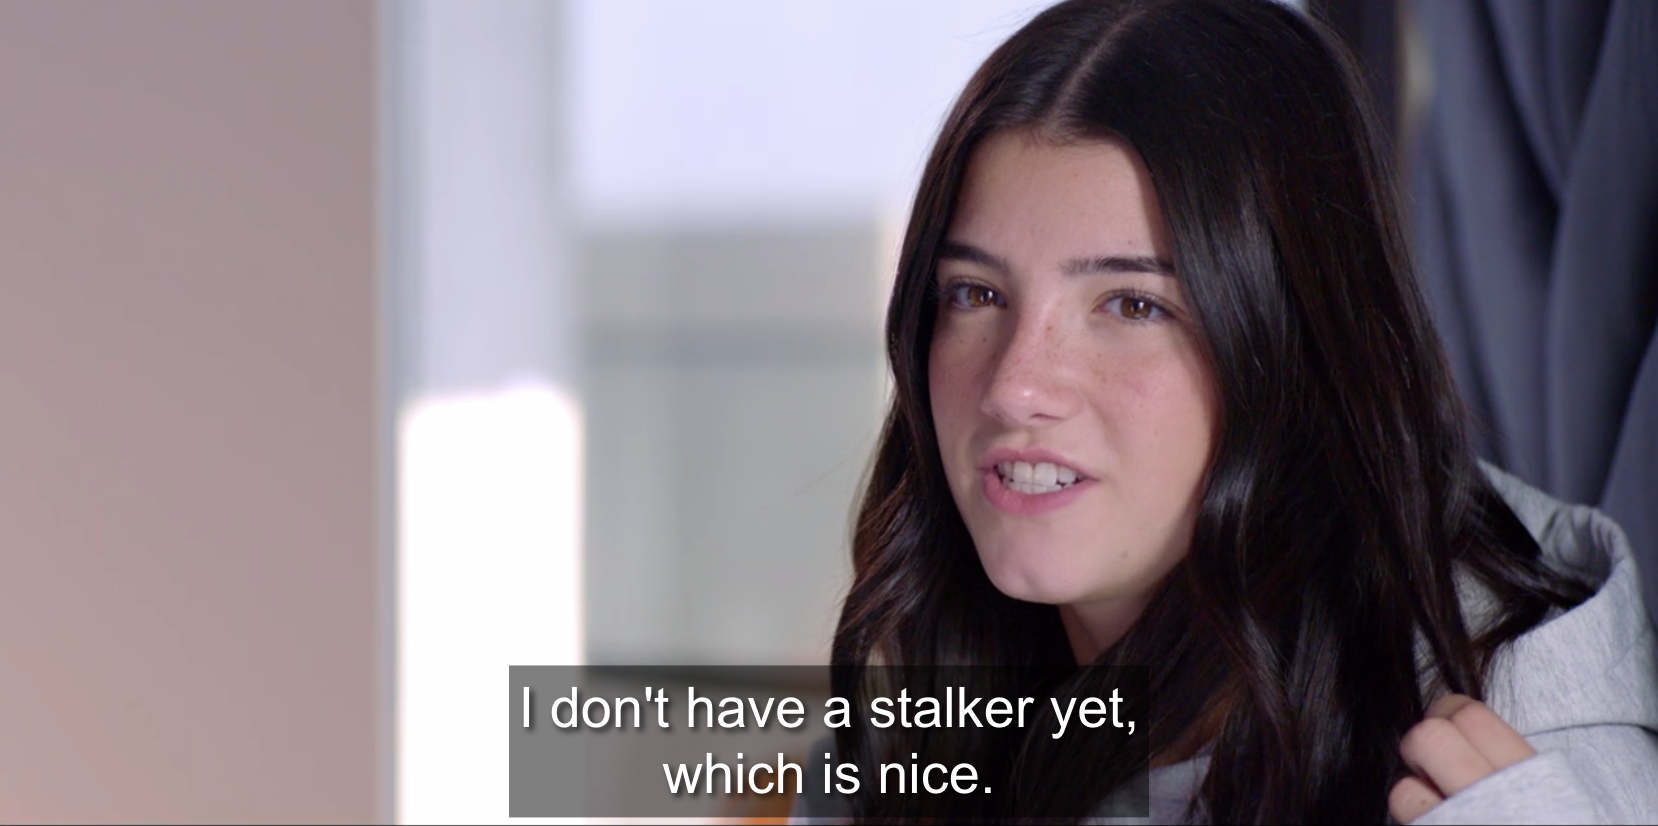 Charli talking about how she doesn't have a stalker